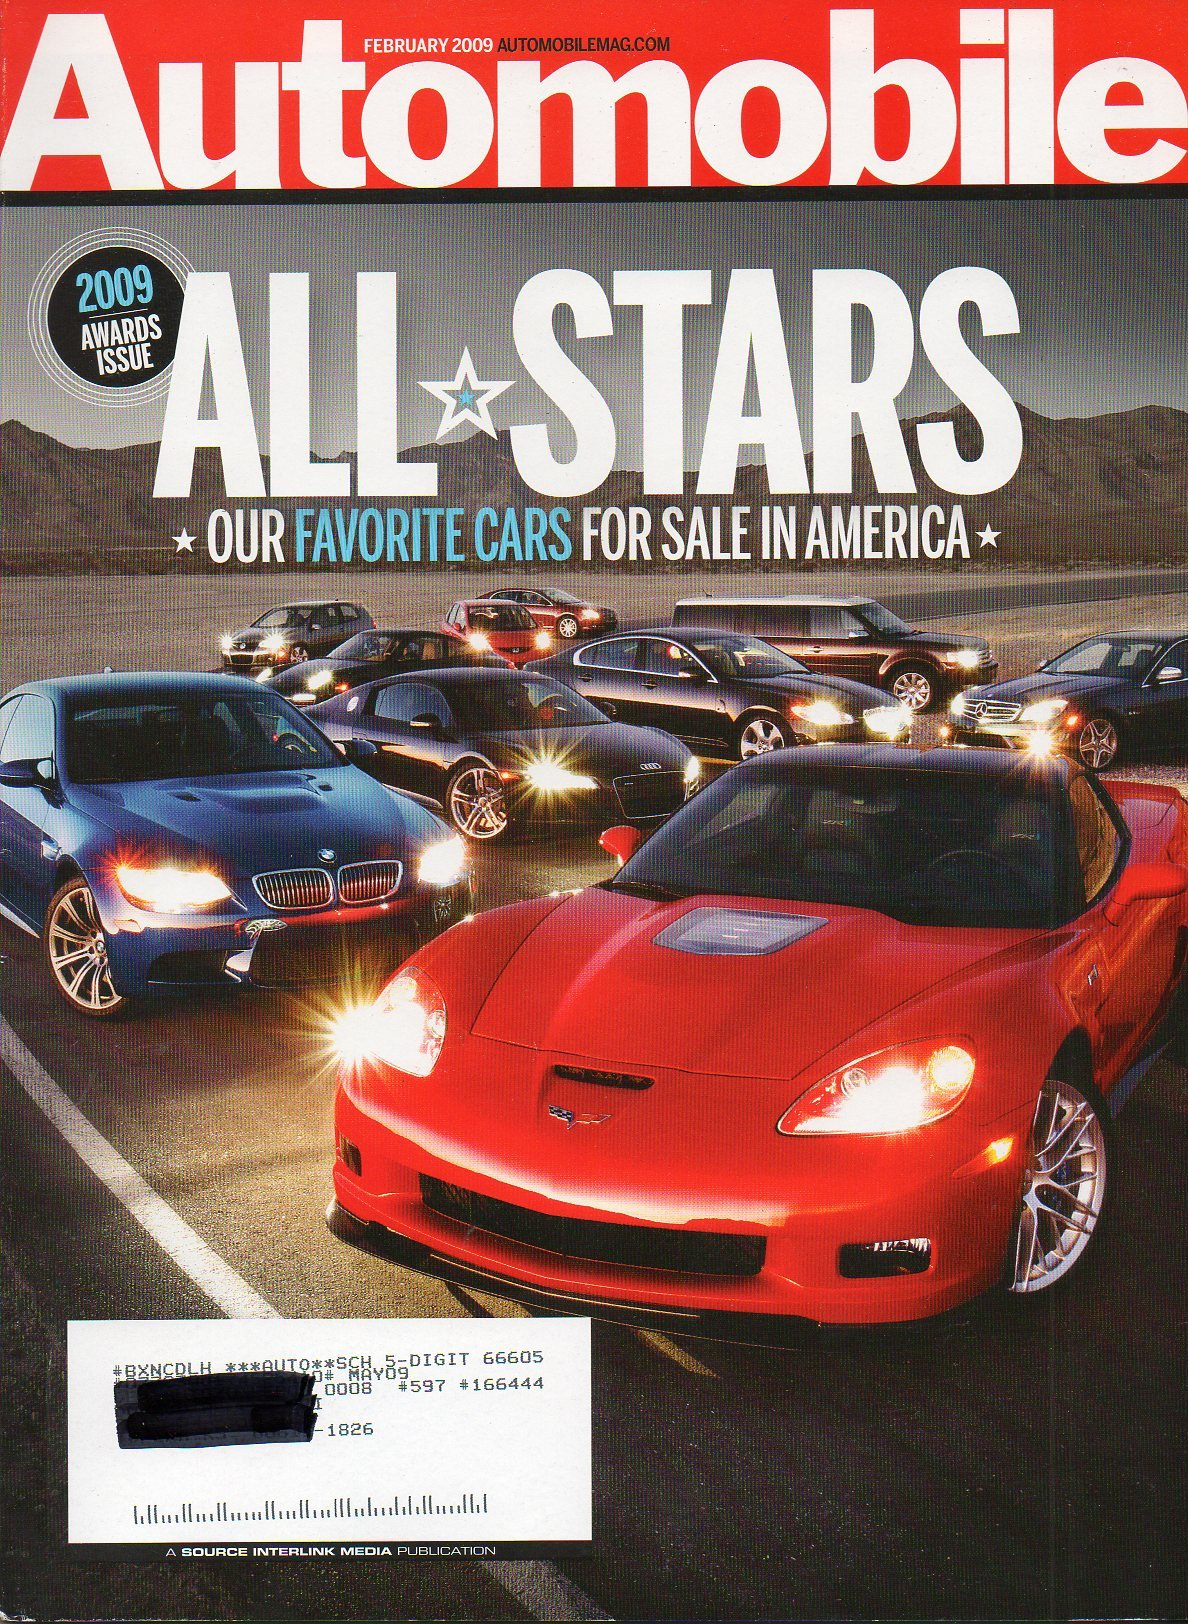 Automobile Magazine February 2009 All Stars Favorite Cars Amazon